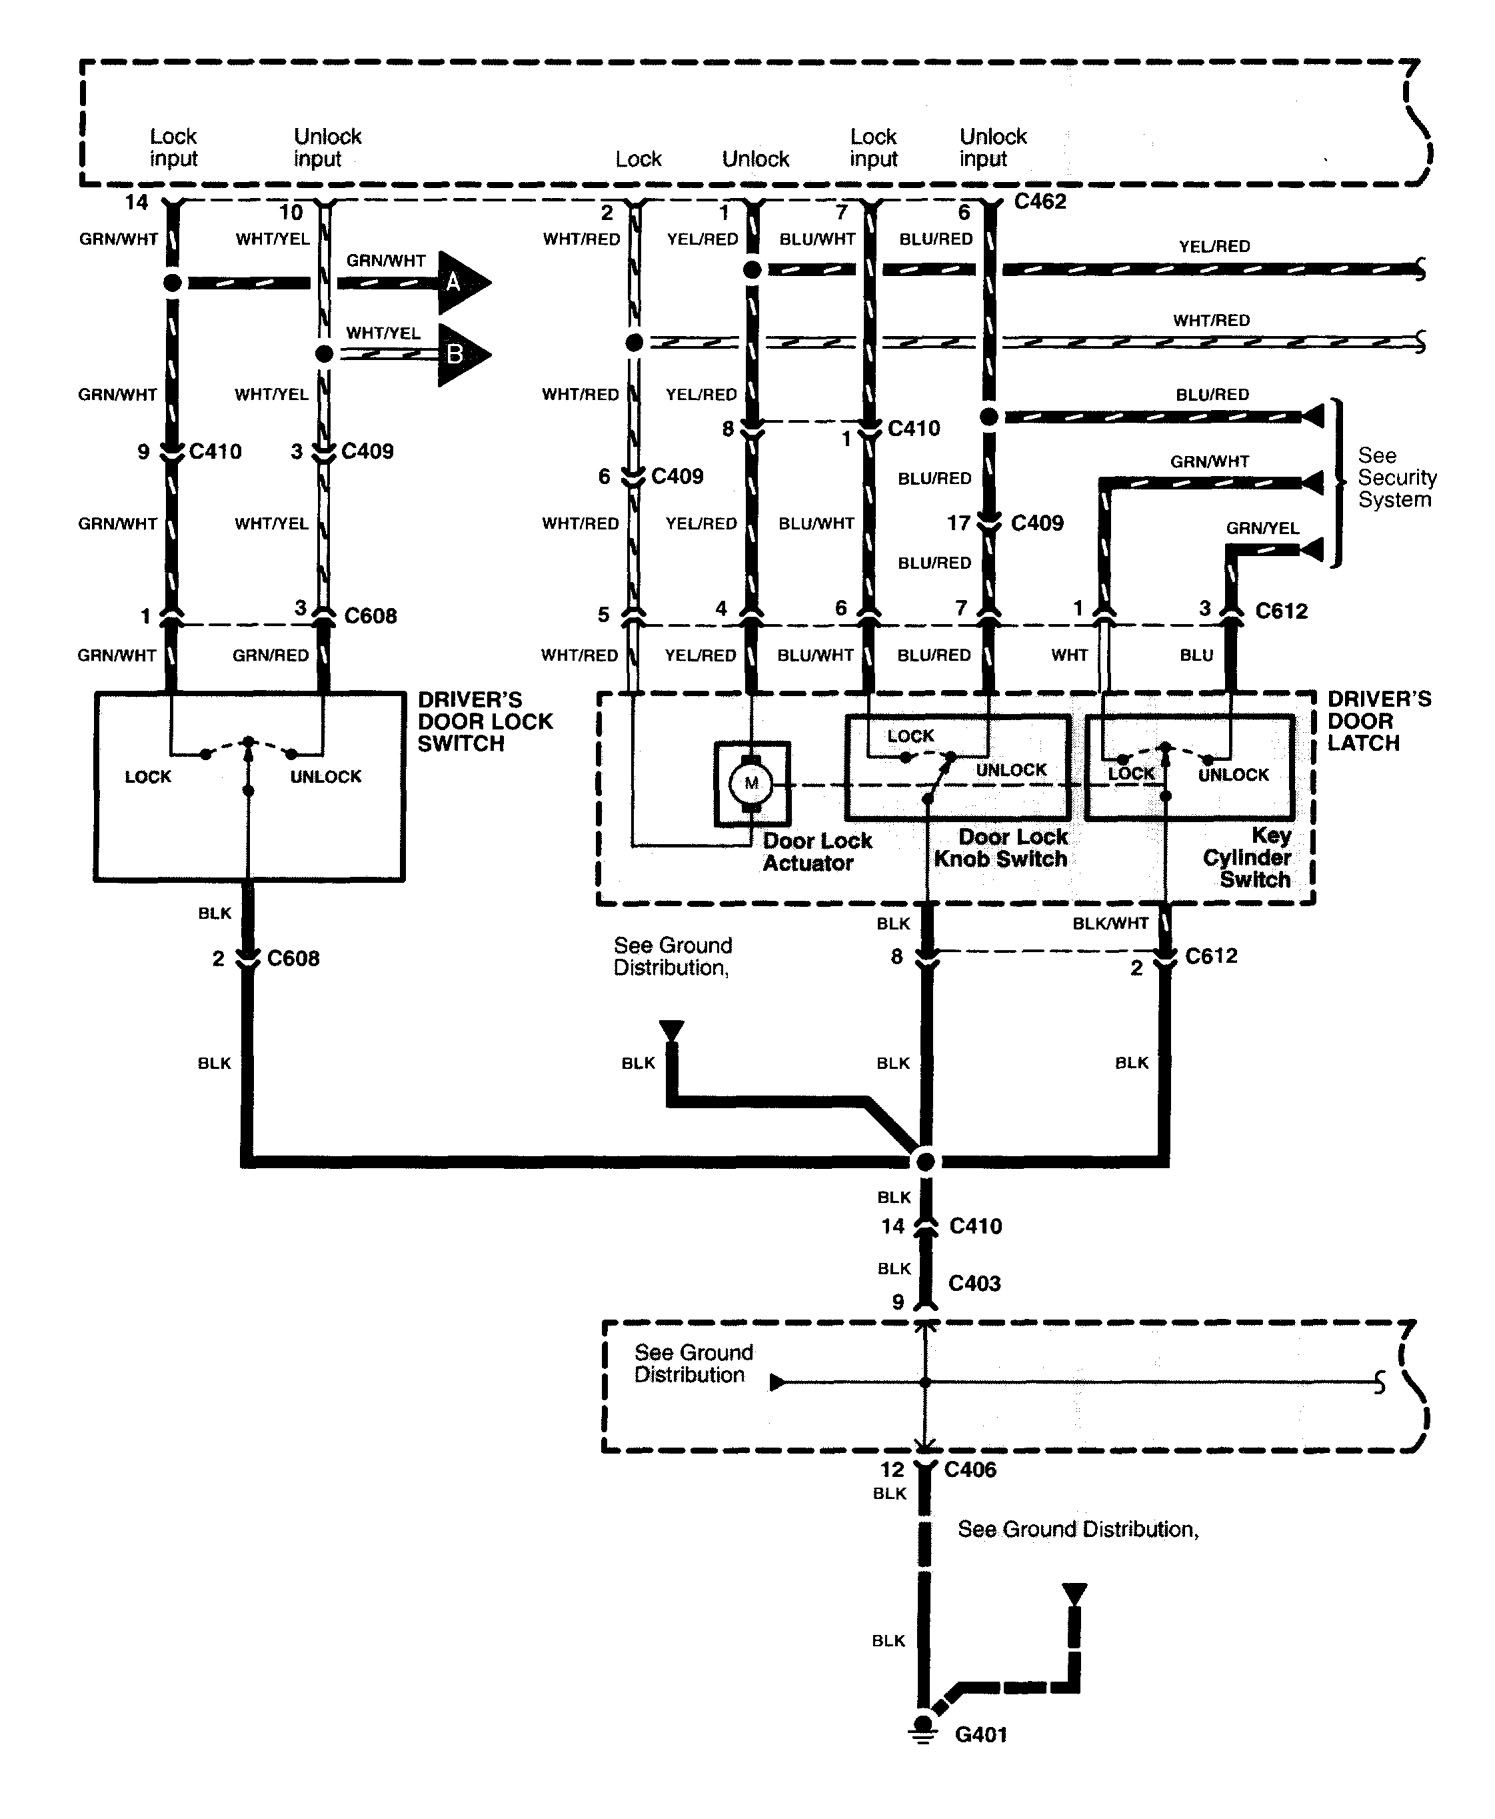 hight resolution of wiring diagram 2007 acura mdx wiring diagram user 2005 acura mdx wiring diagrams acura mdx wiring diagram